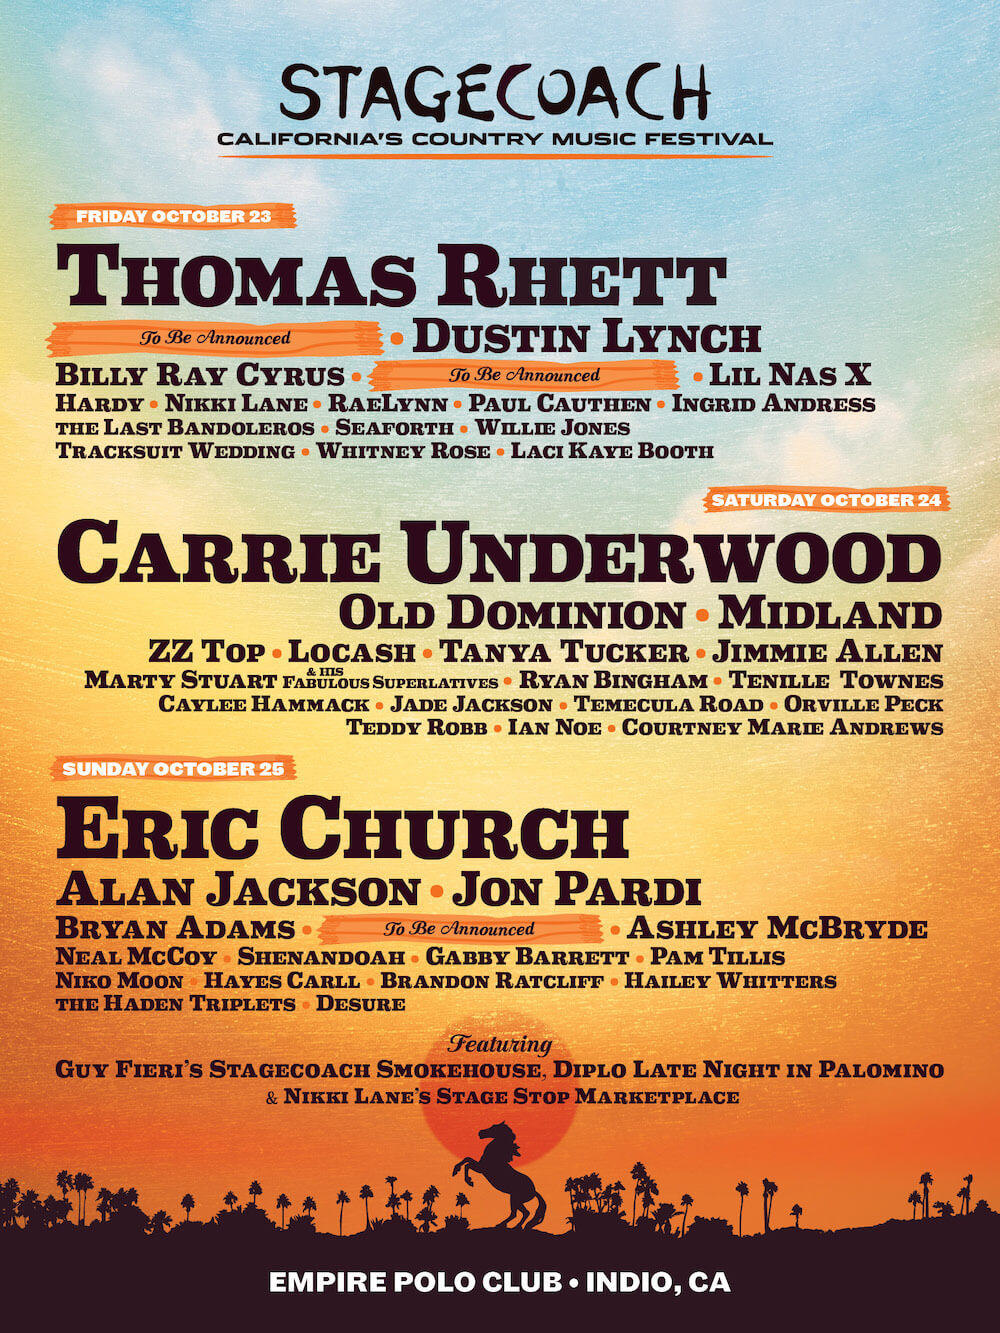 Stagecoach 2020 Lineup